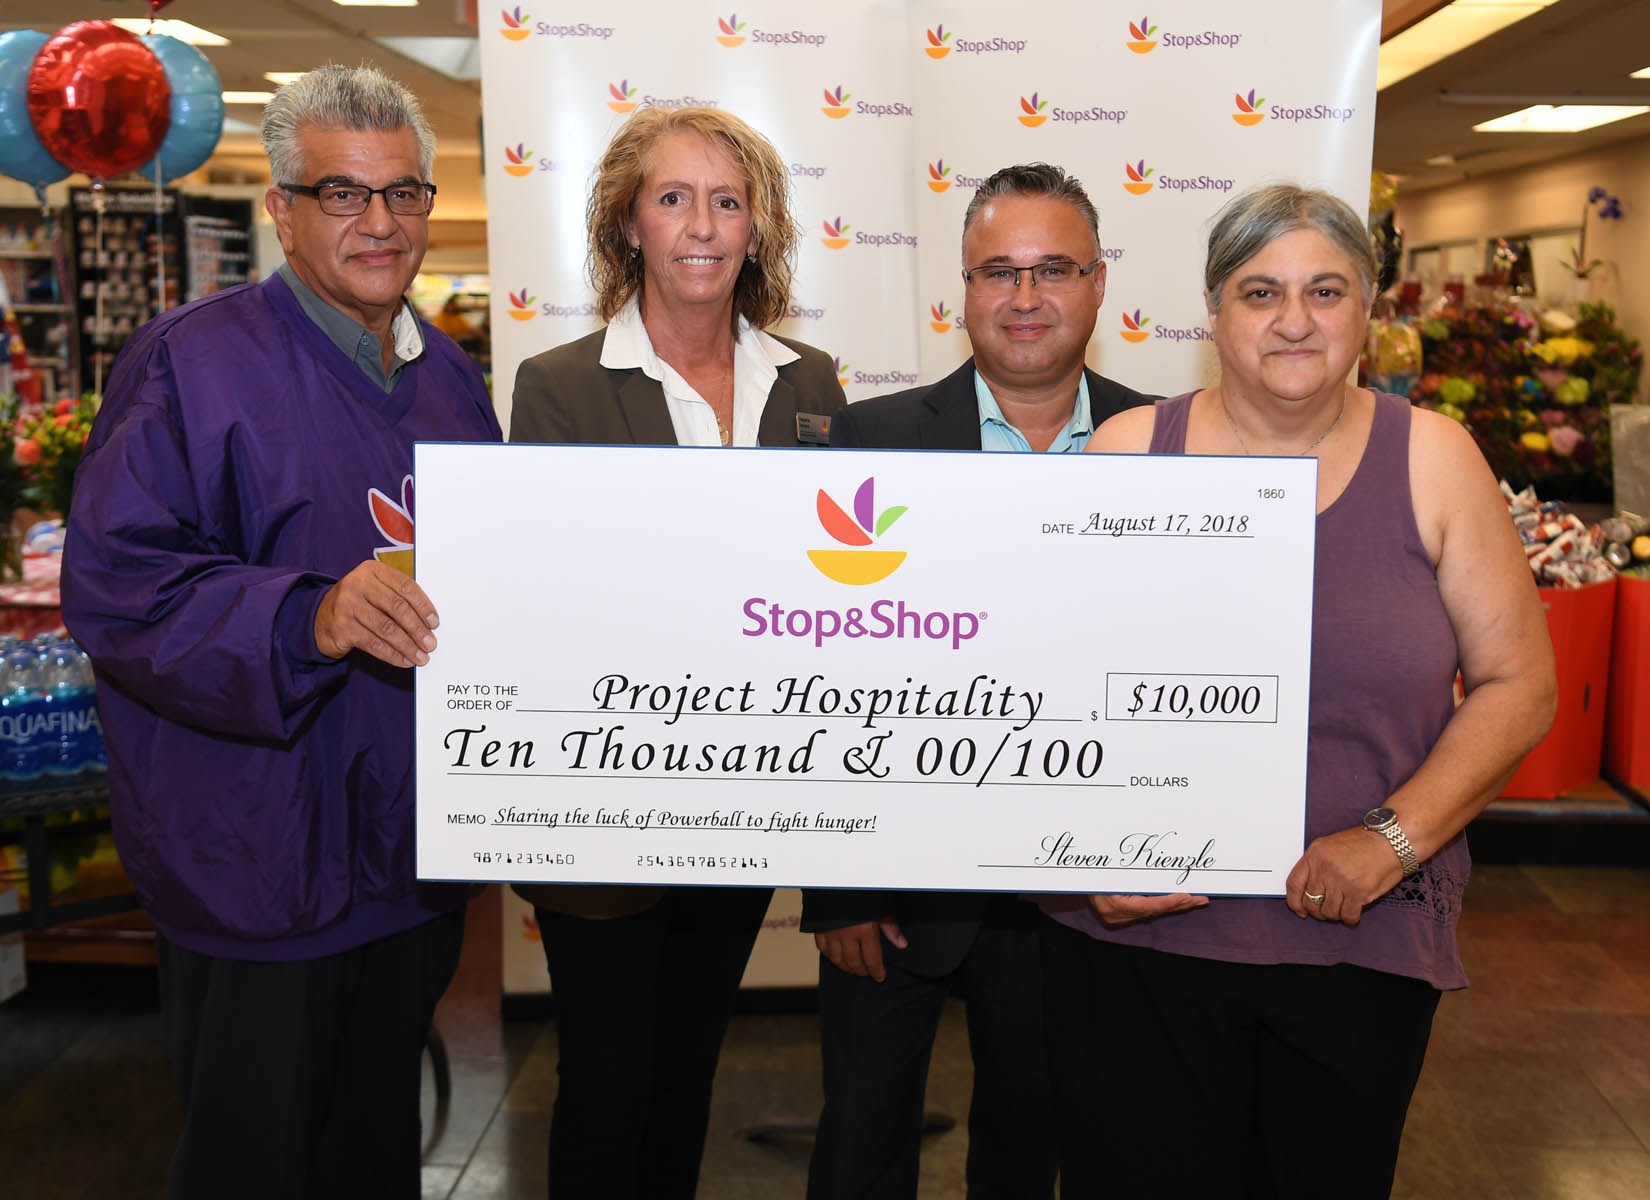 Staten Island Stop & Shop Donates Commission From Selling Winning Powerball Ticket